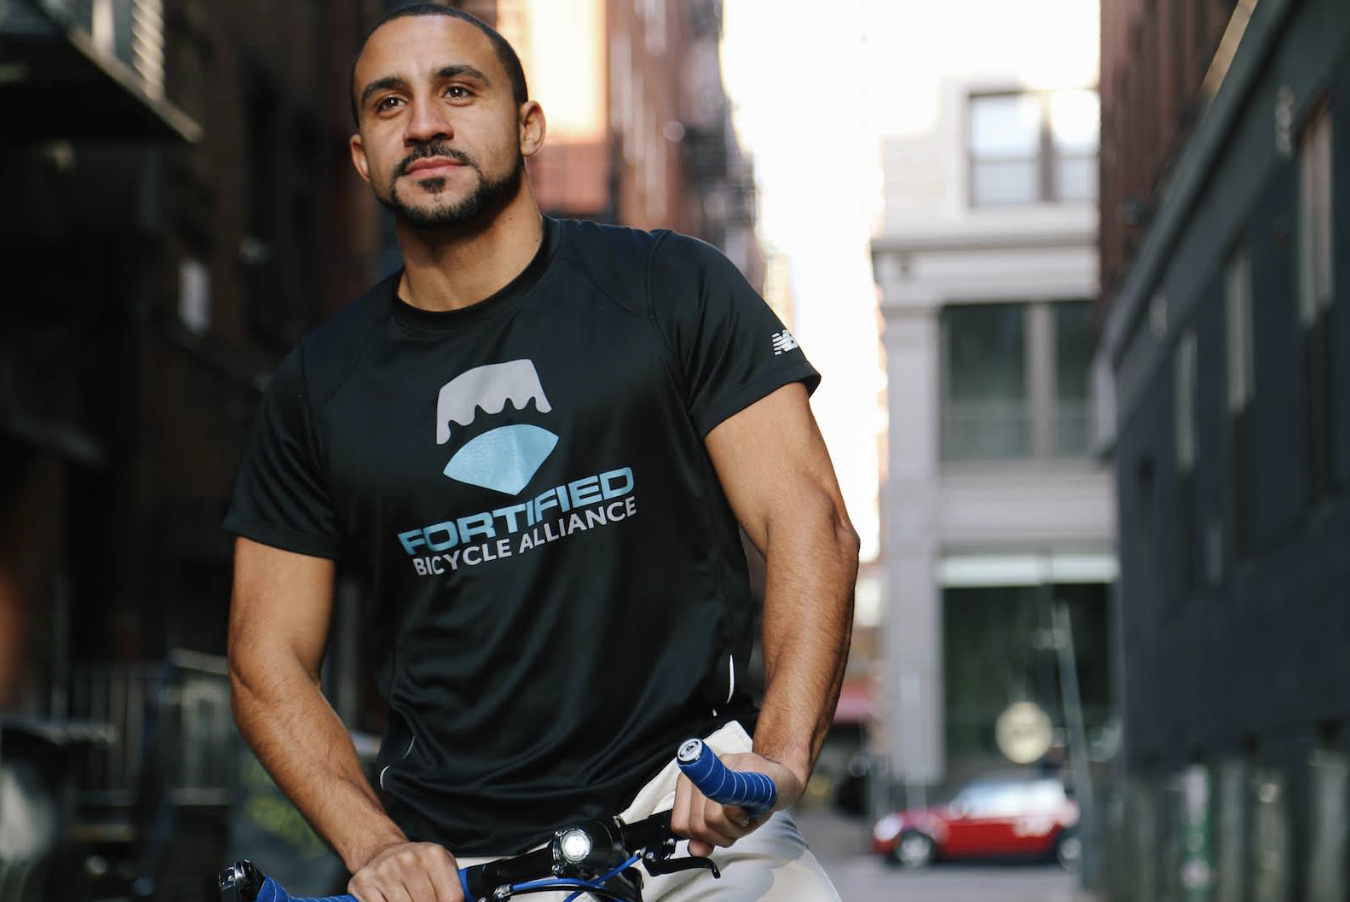 Tivan Amour, founder of Fortified Bicycles and SaveMySales